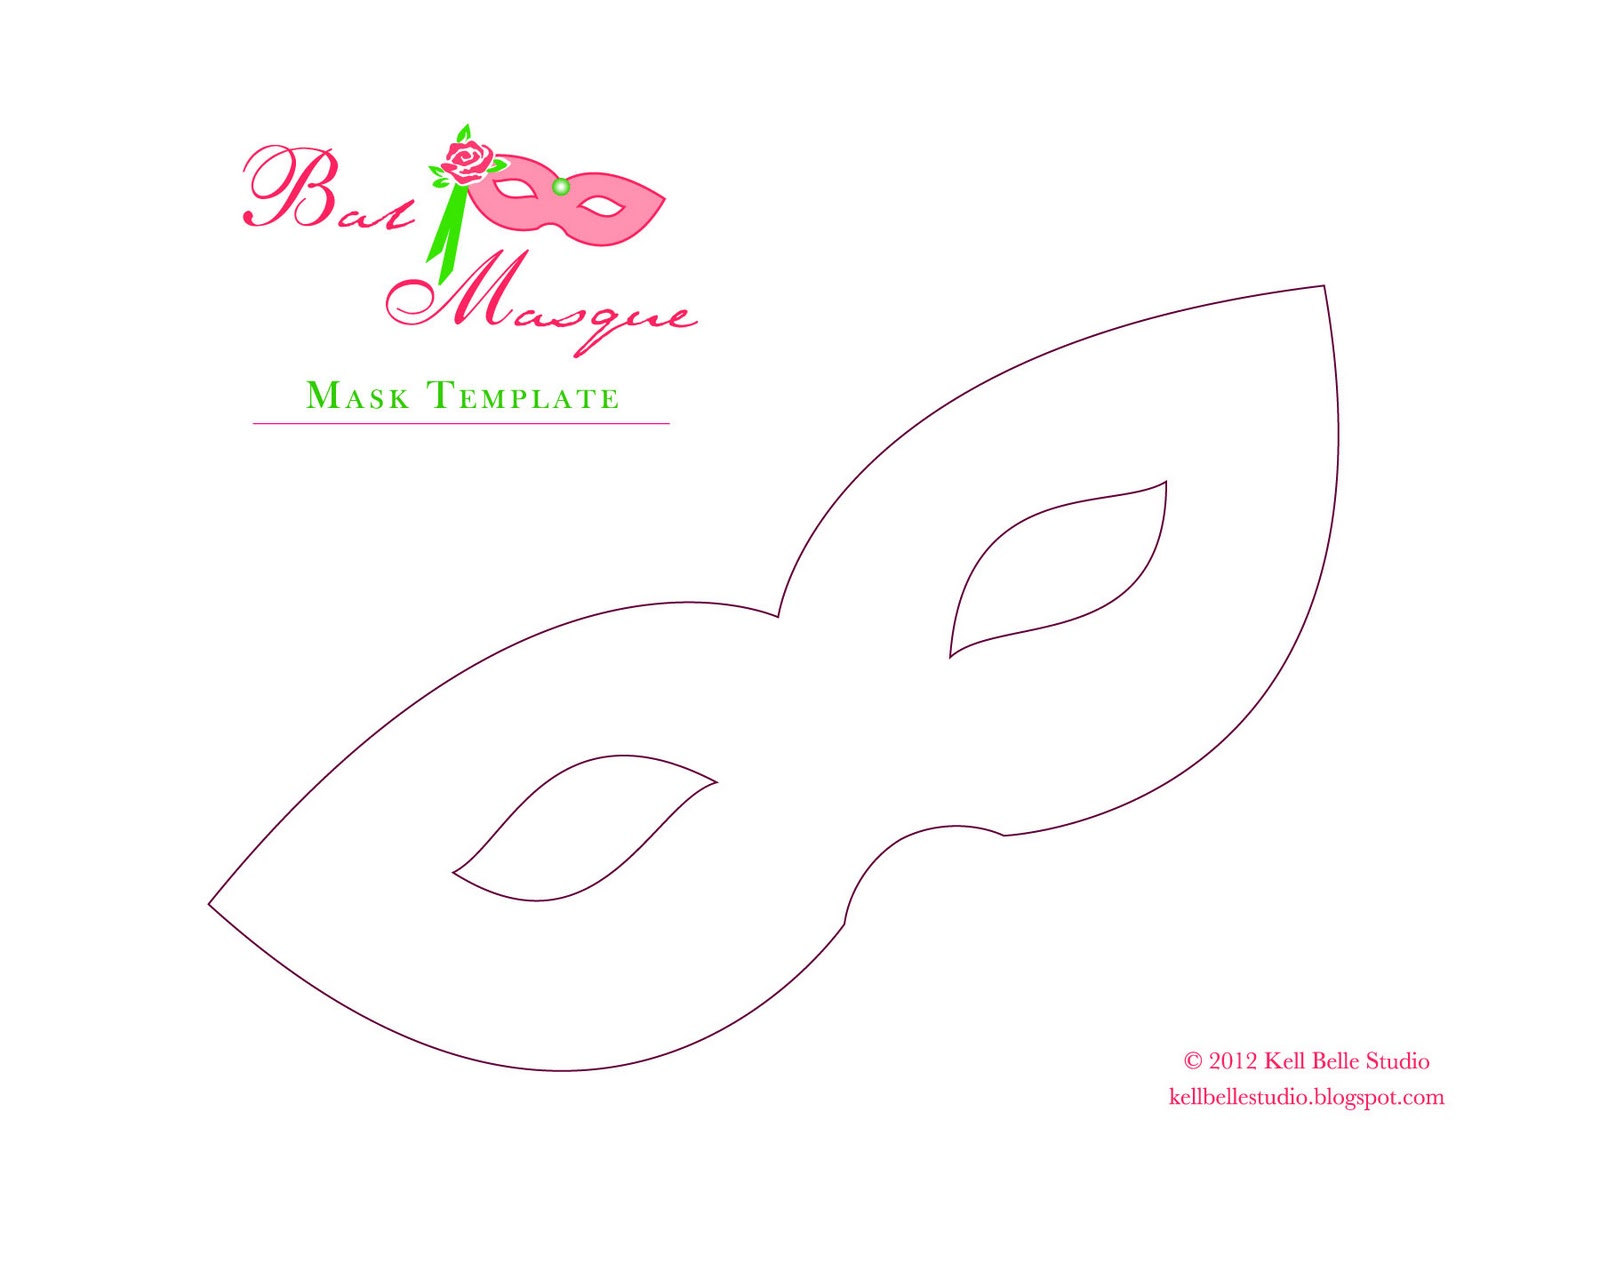 free paper mask template - click image for full size (8 x 10 inches)